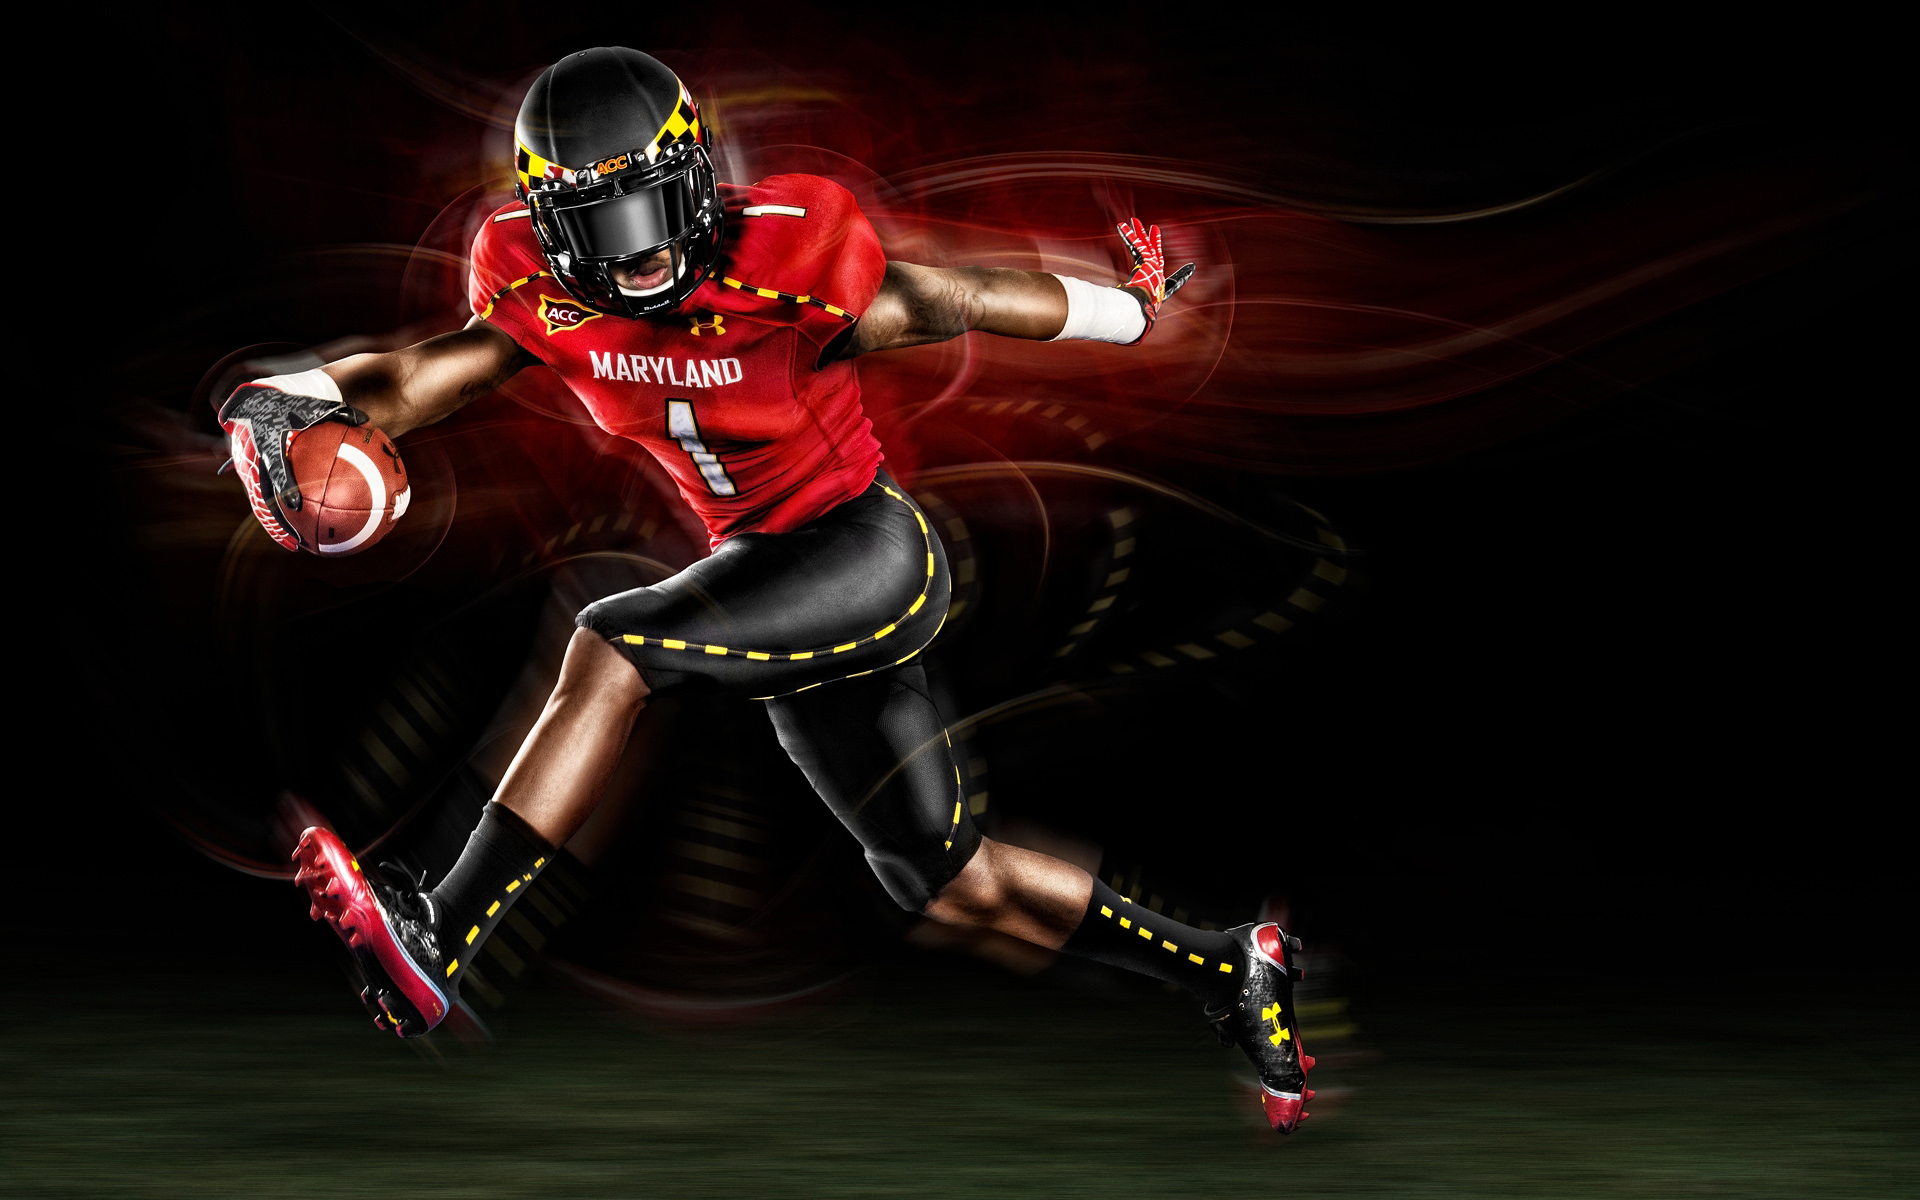 Under Armour Football Advertising campaign by Blair Bunting